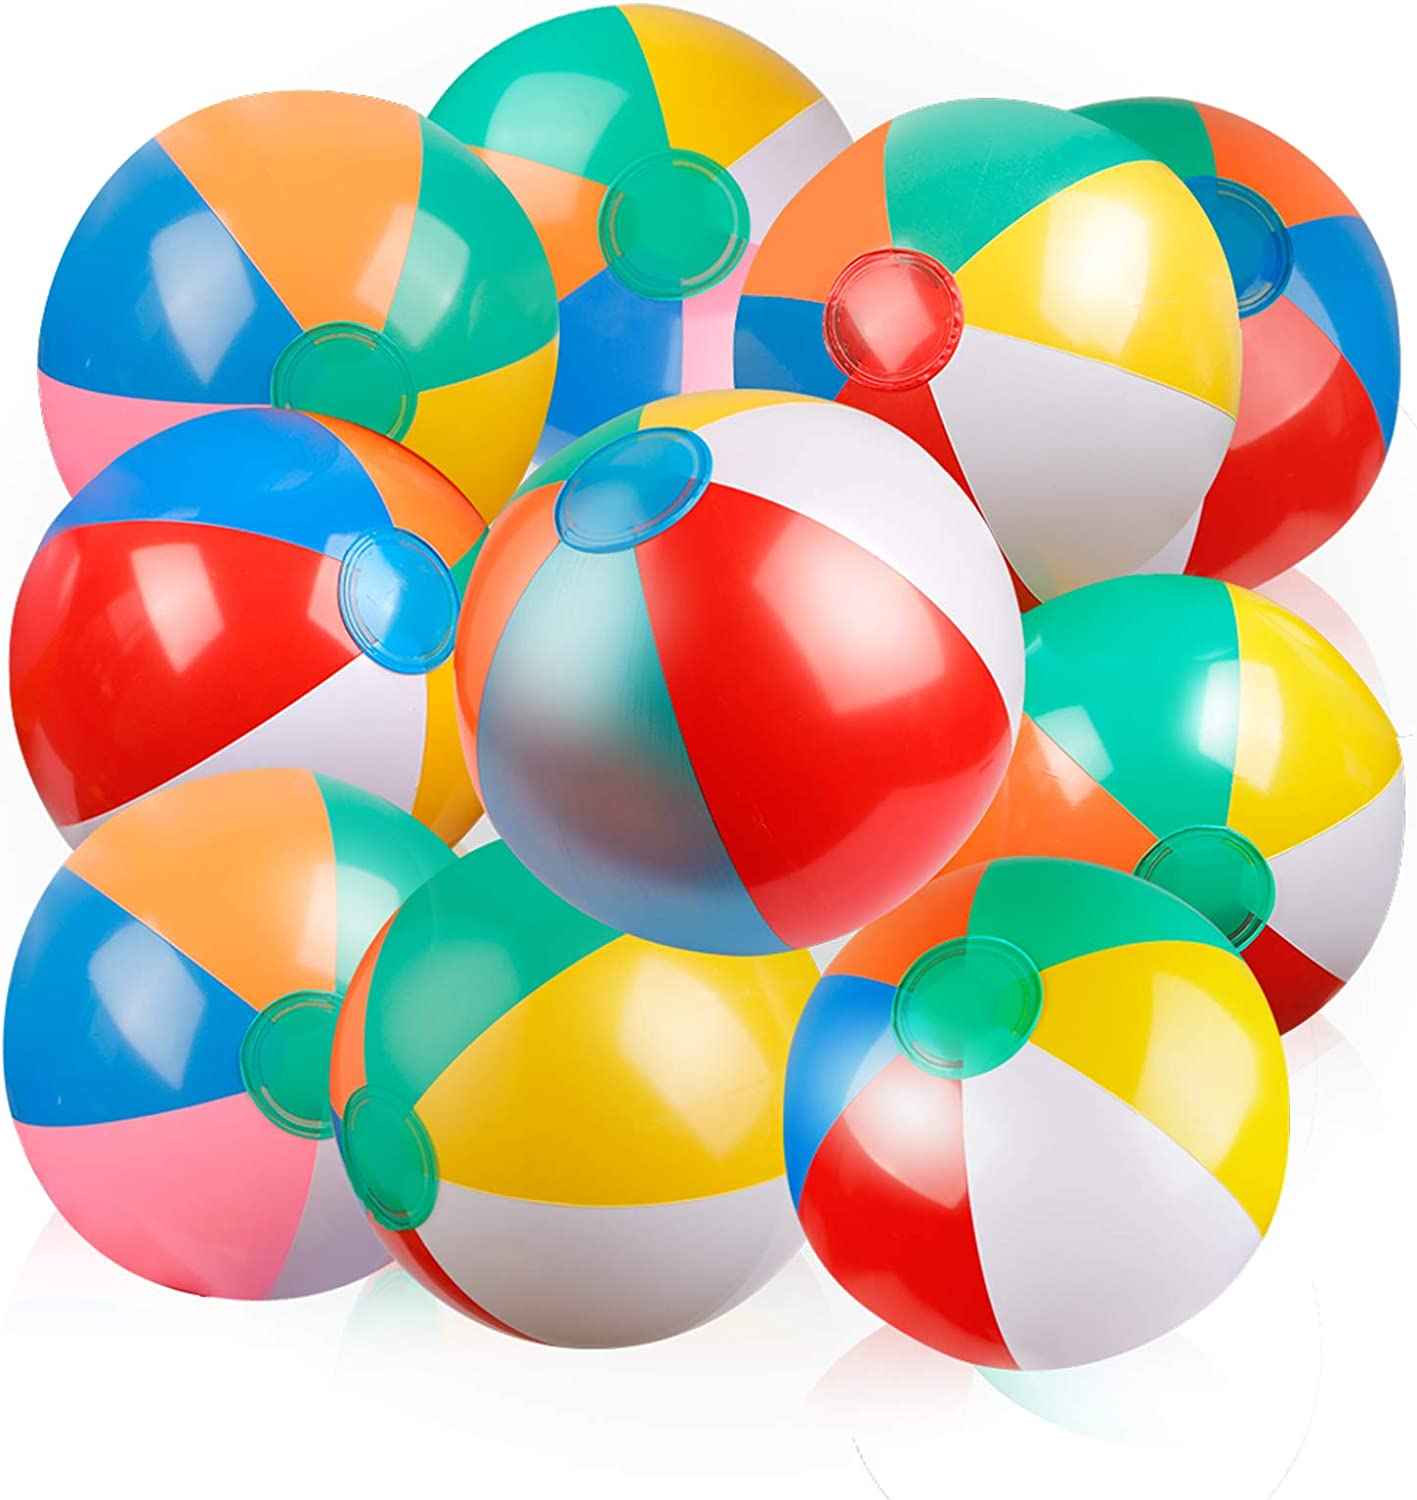 Coogam Inflatable Beach Ball Classic Color Rainbow Price reduction Birthday Al sold out. Pool